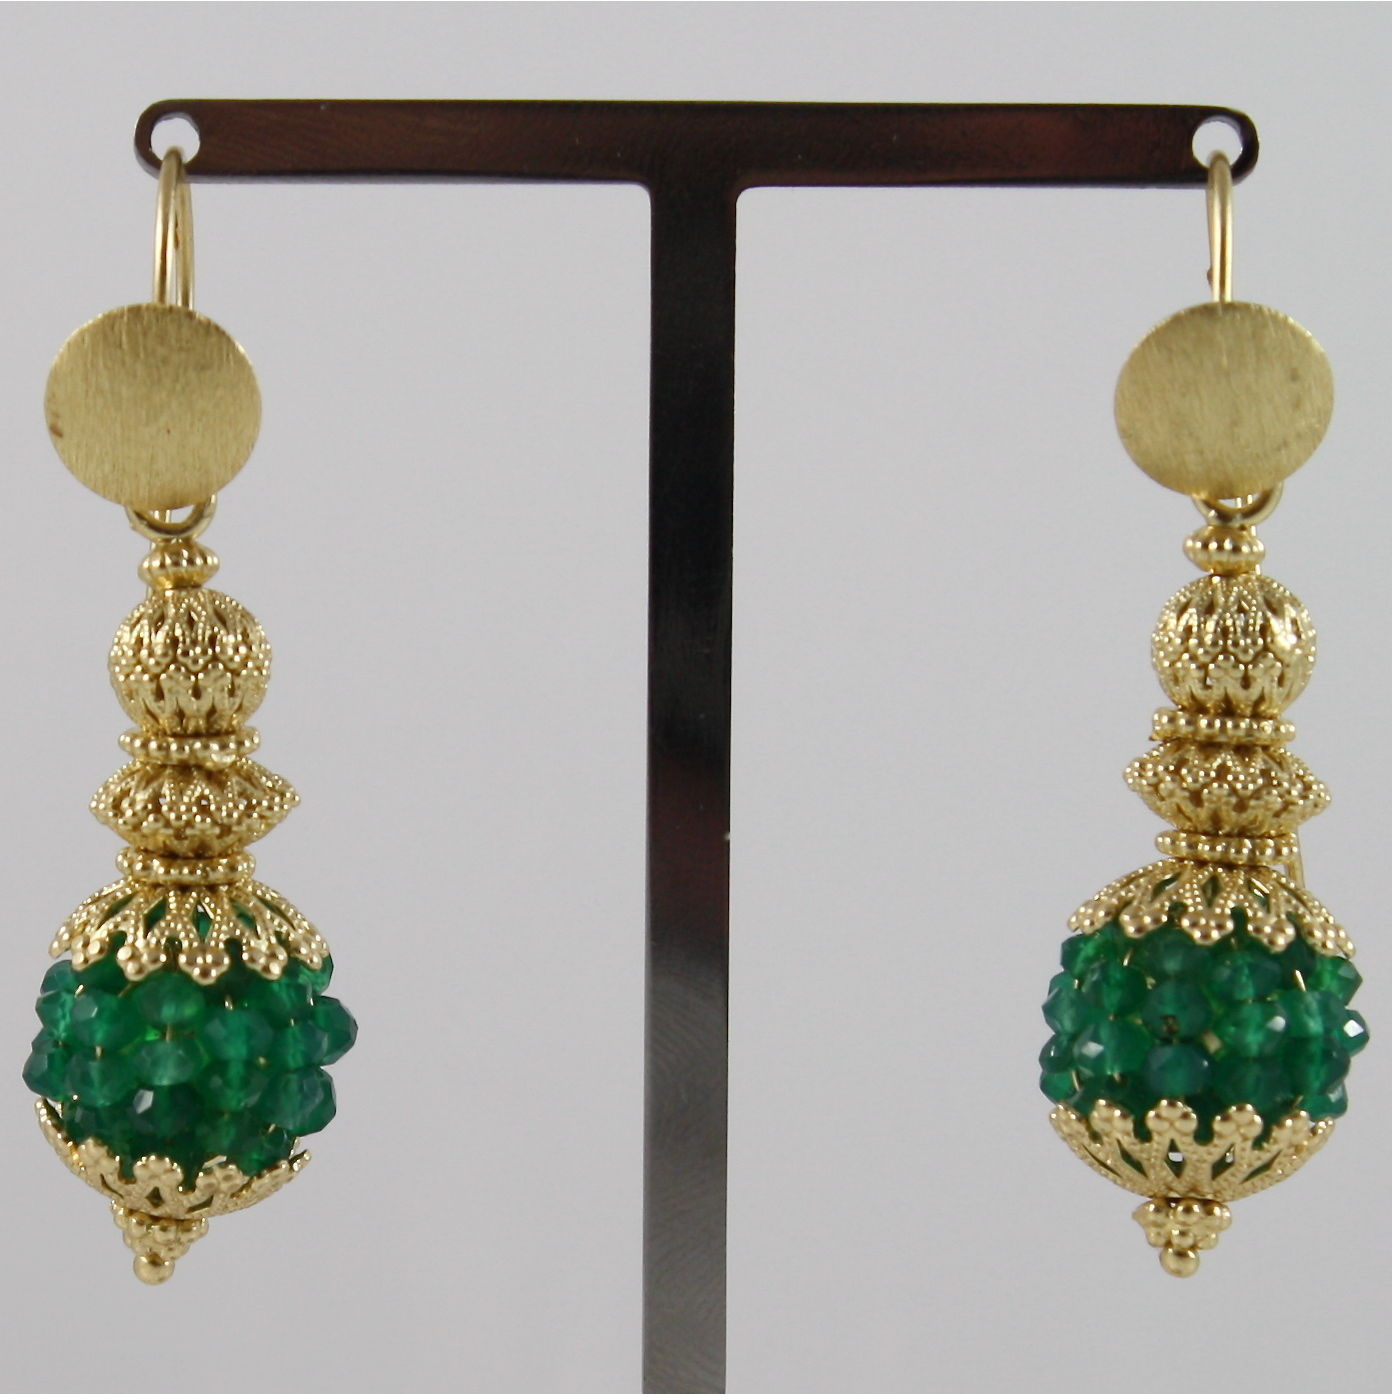 925 SILVER EARRINGS PLAT. GOLD FACETED AVENTURINE MADE IN ITALY BY SAVOIA JEWEL